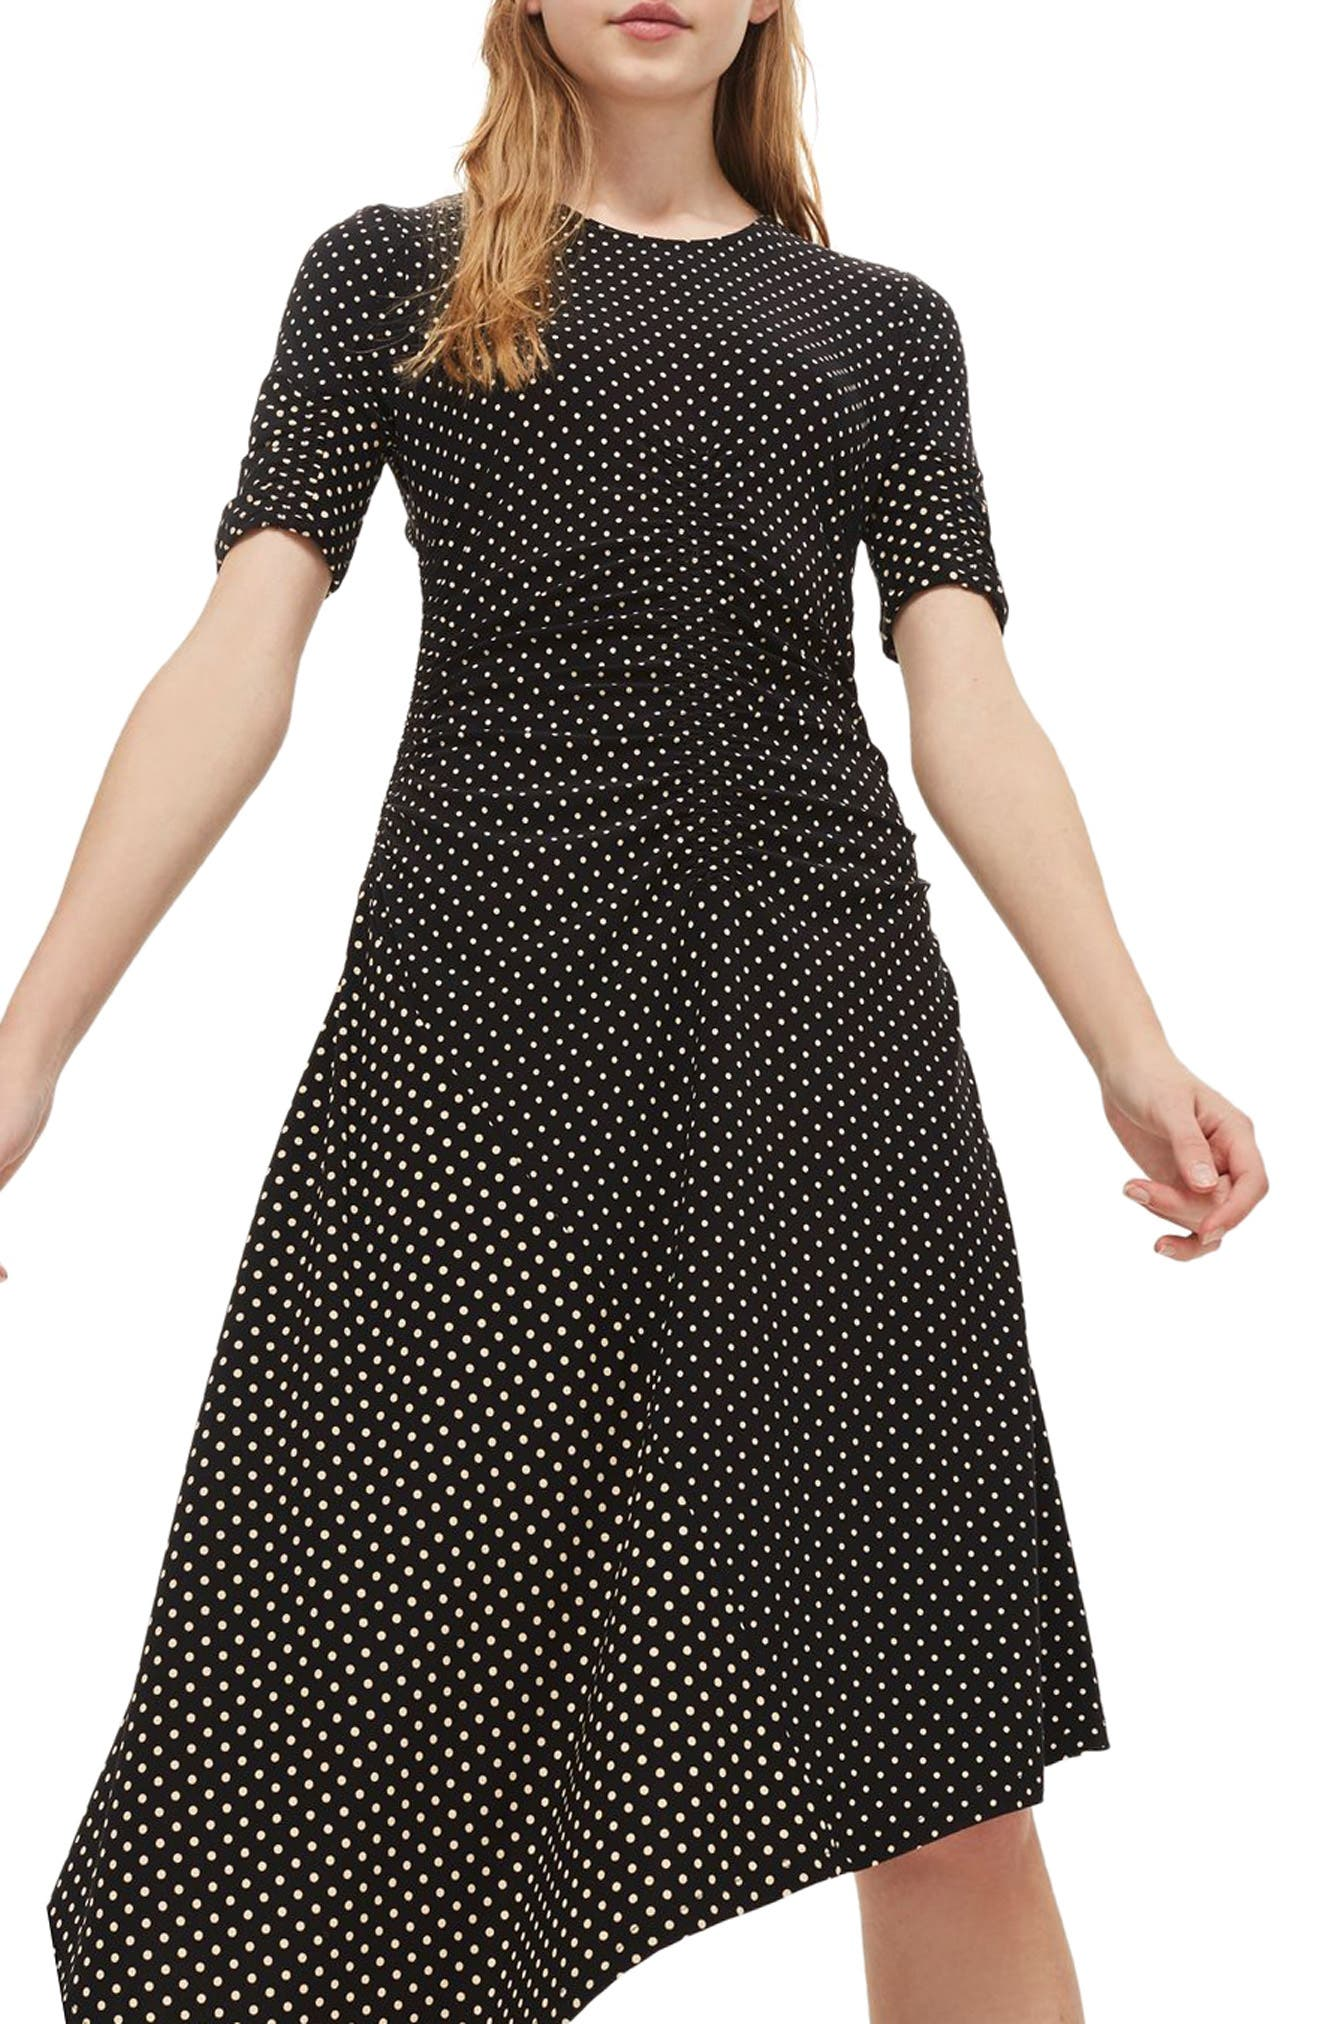 Polka Dot Asymmetrical Midi Dress,                         Main,                         color, 001